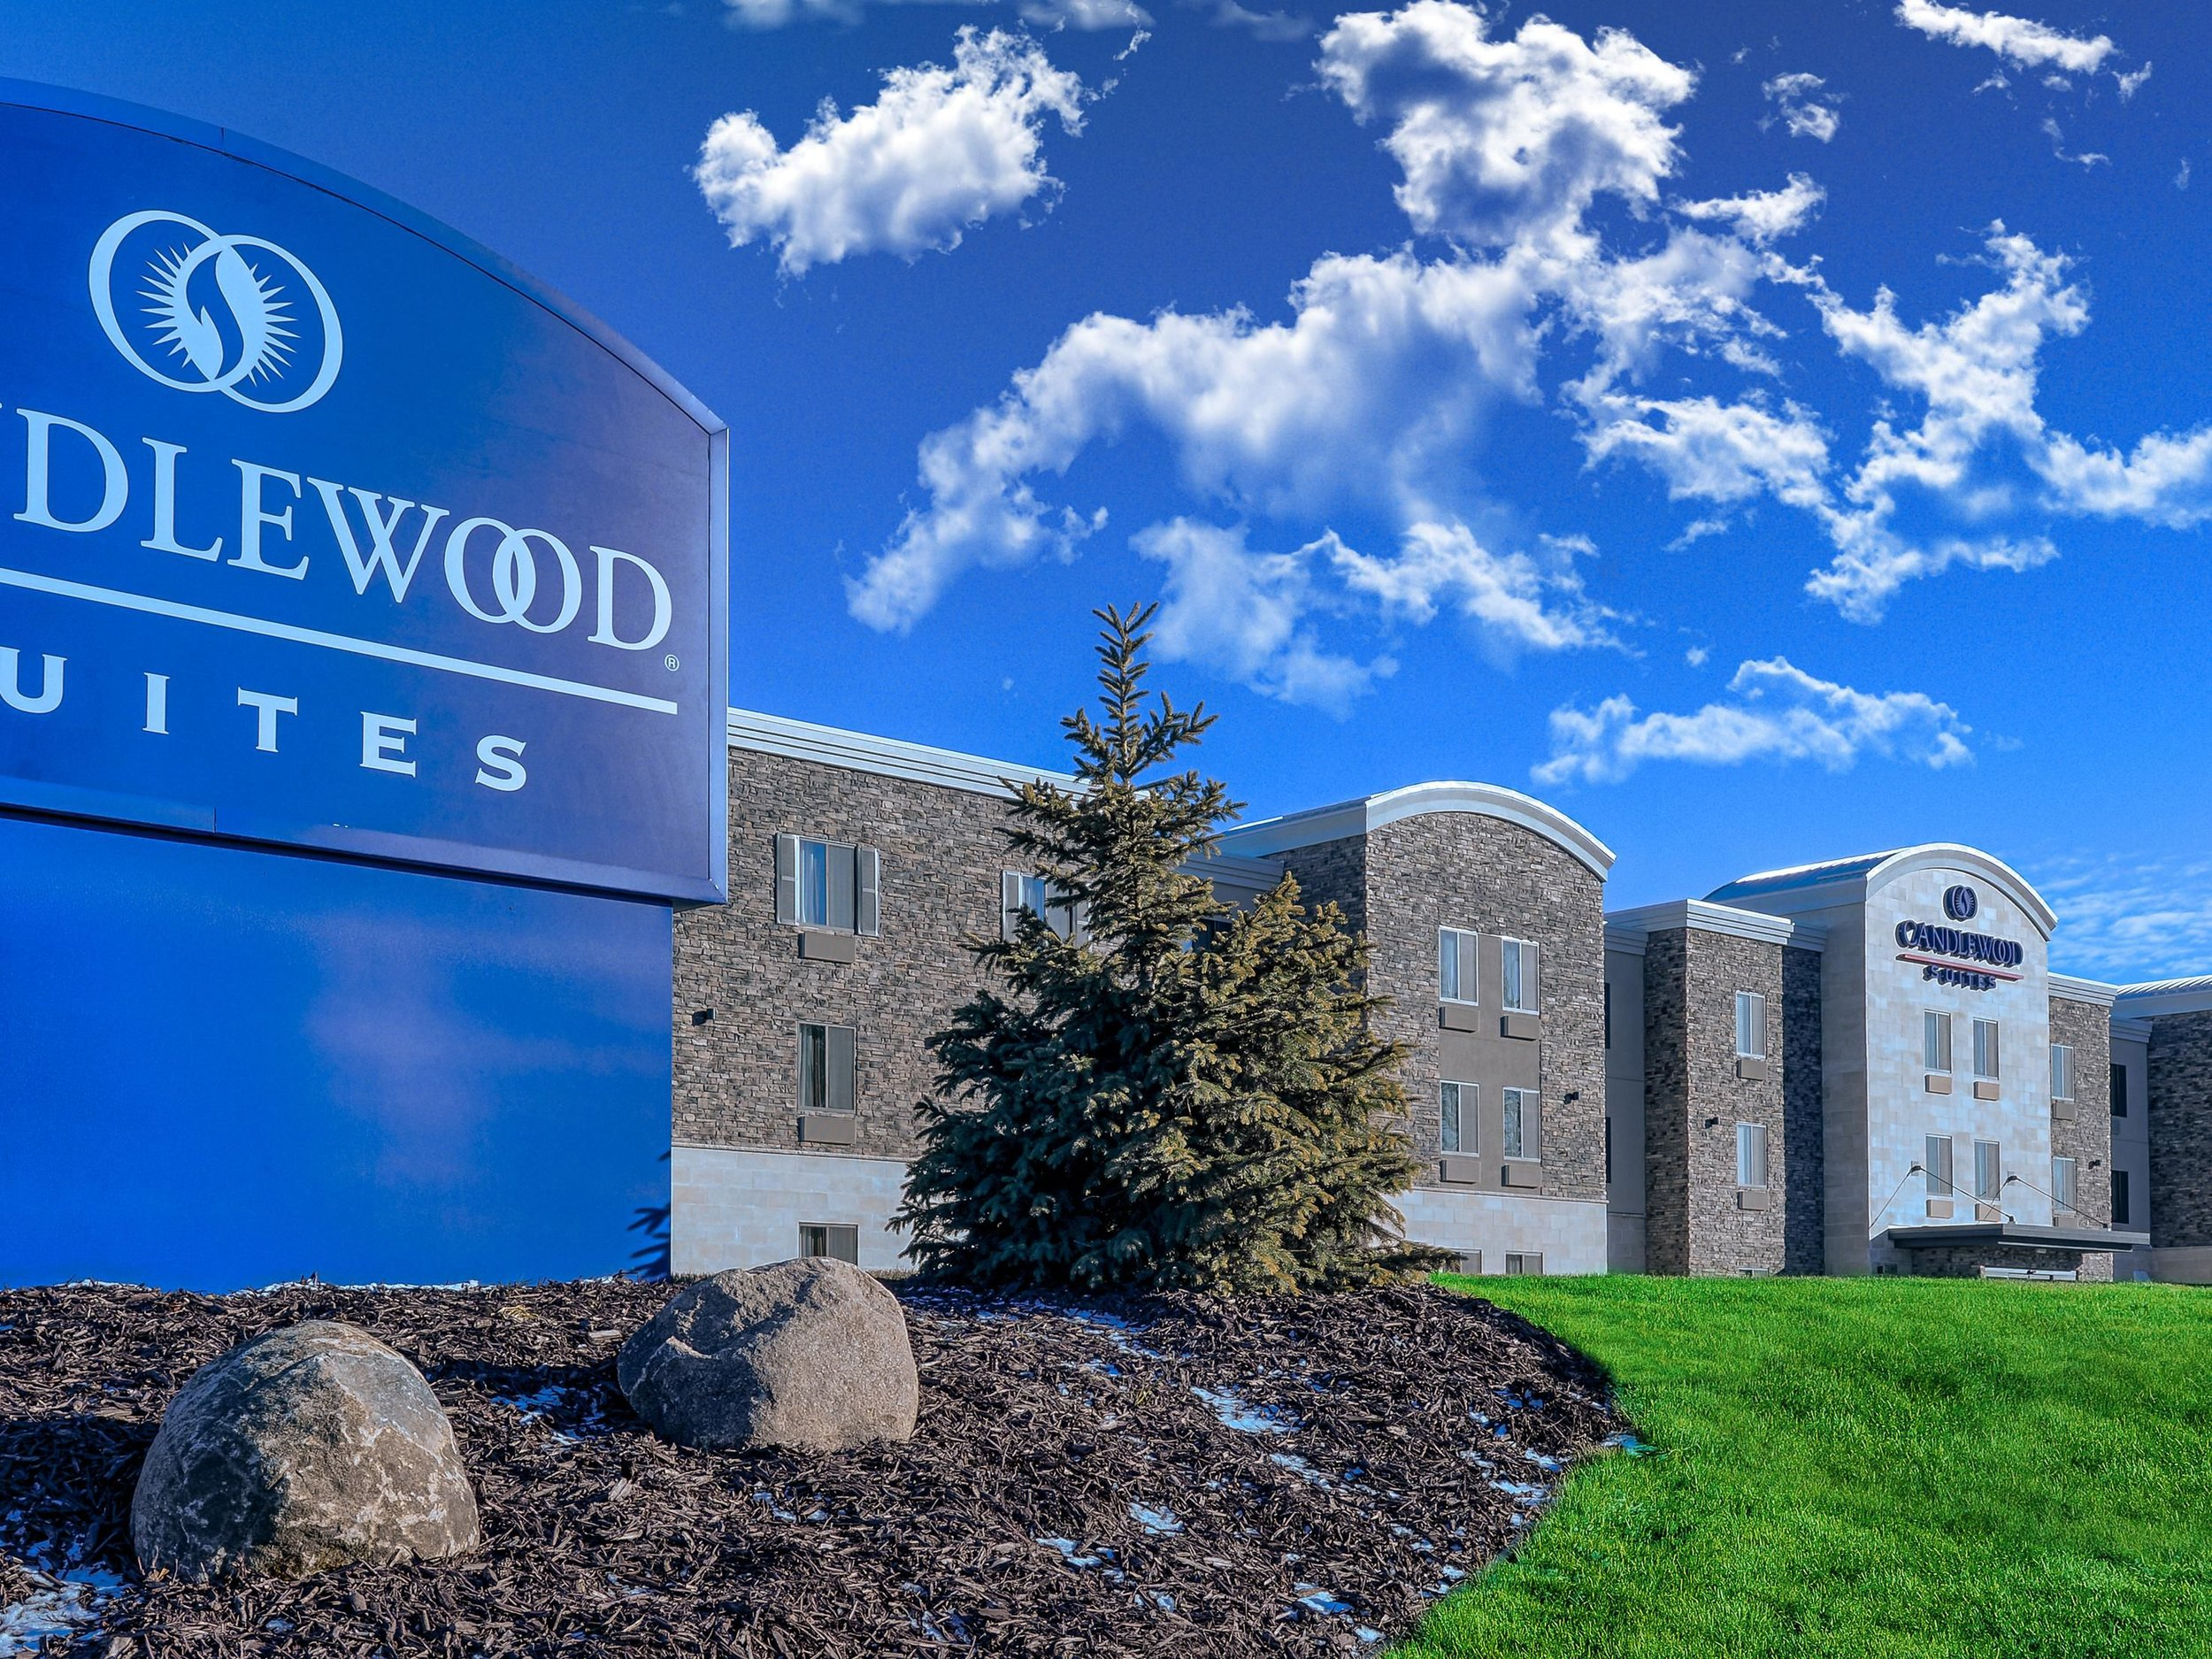 Candlewood Suites Lakeville - 21060 Keswick Loop, Lakeville, MN 55044(612) 808-5580 WebsiteNew hotel, very nice, generally a more affordable option.